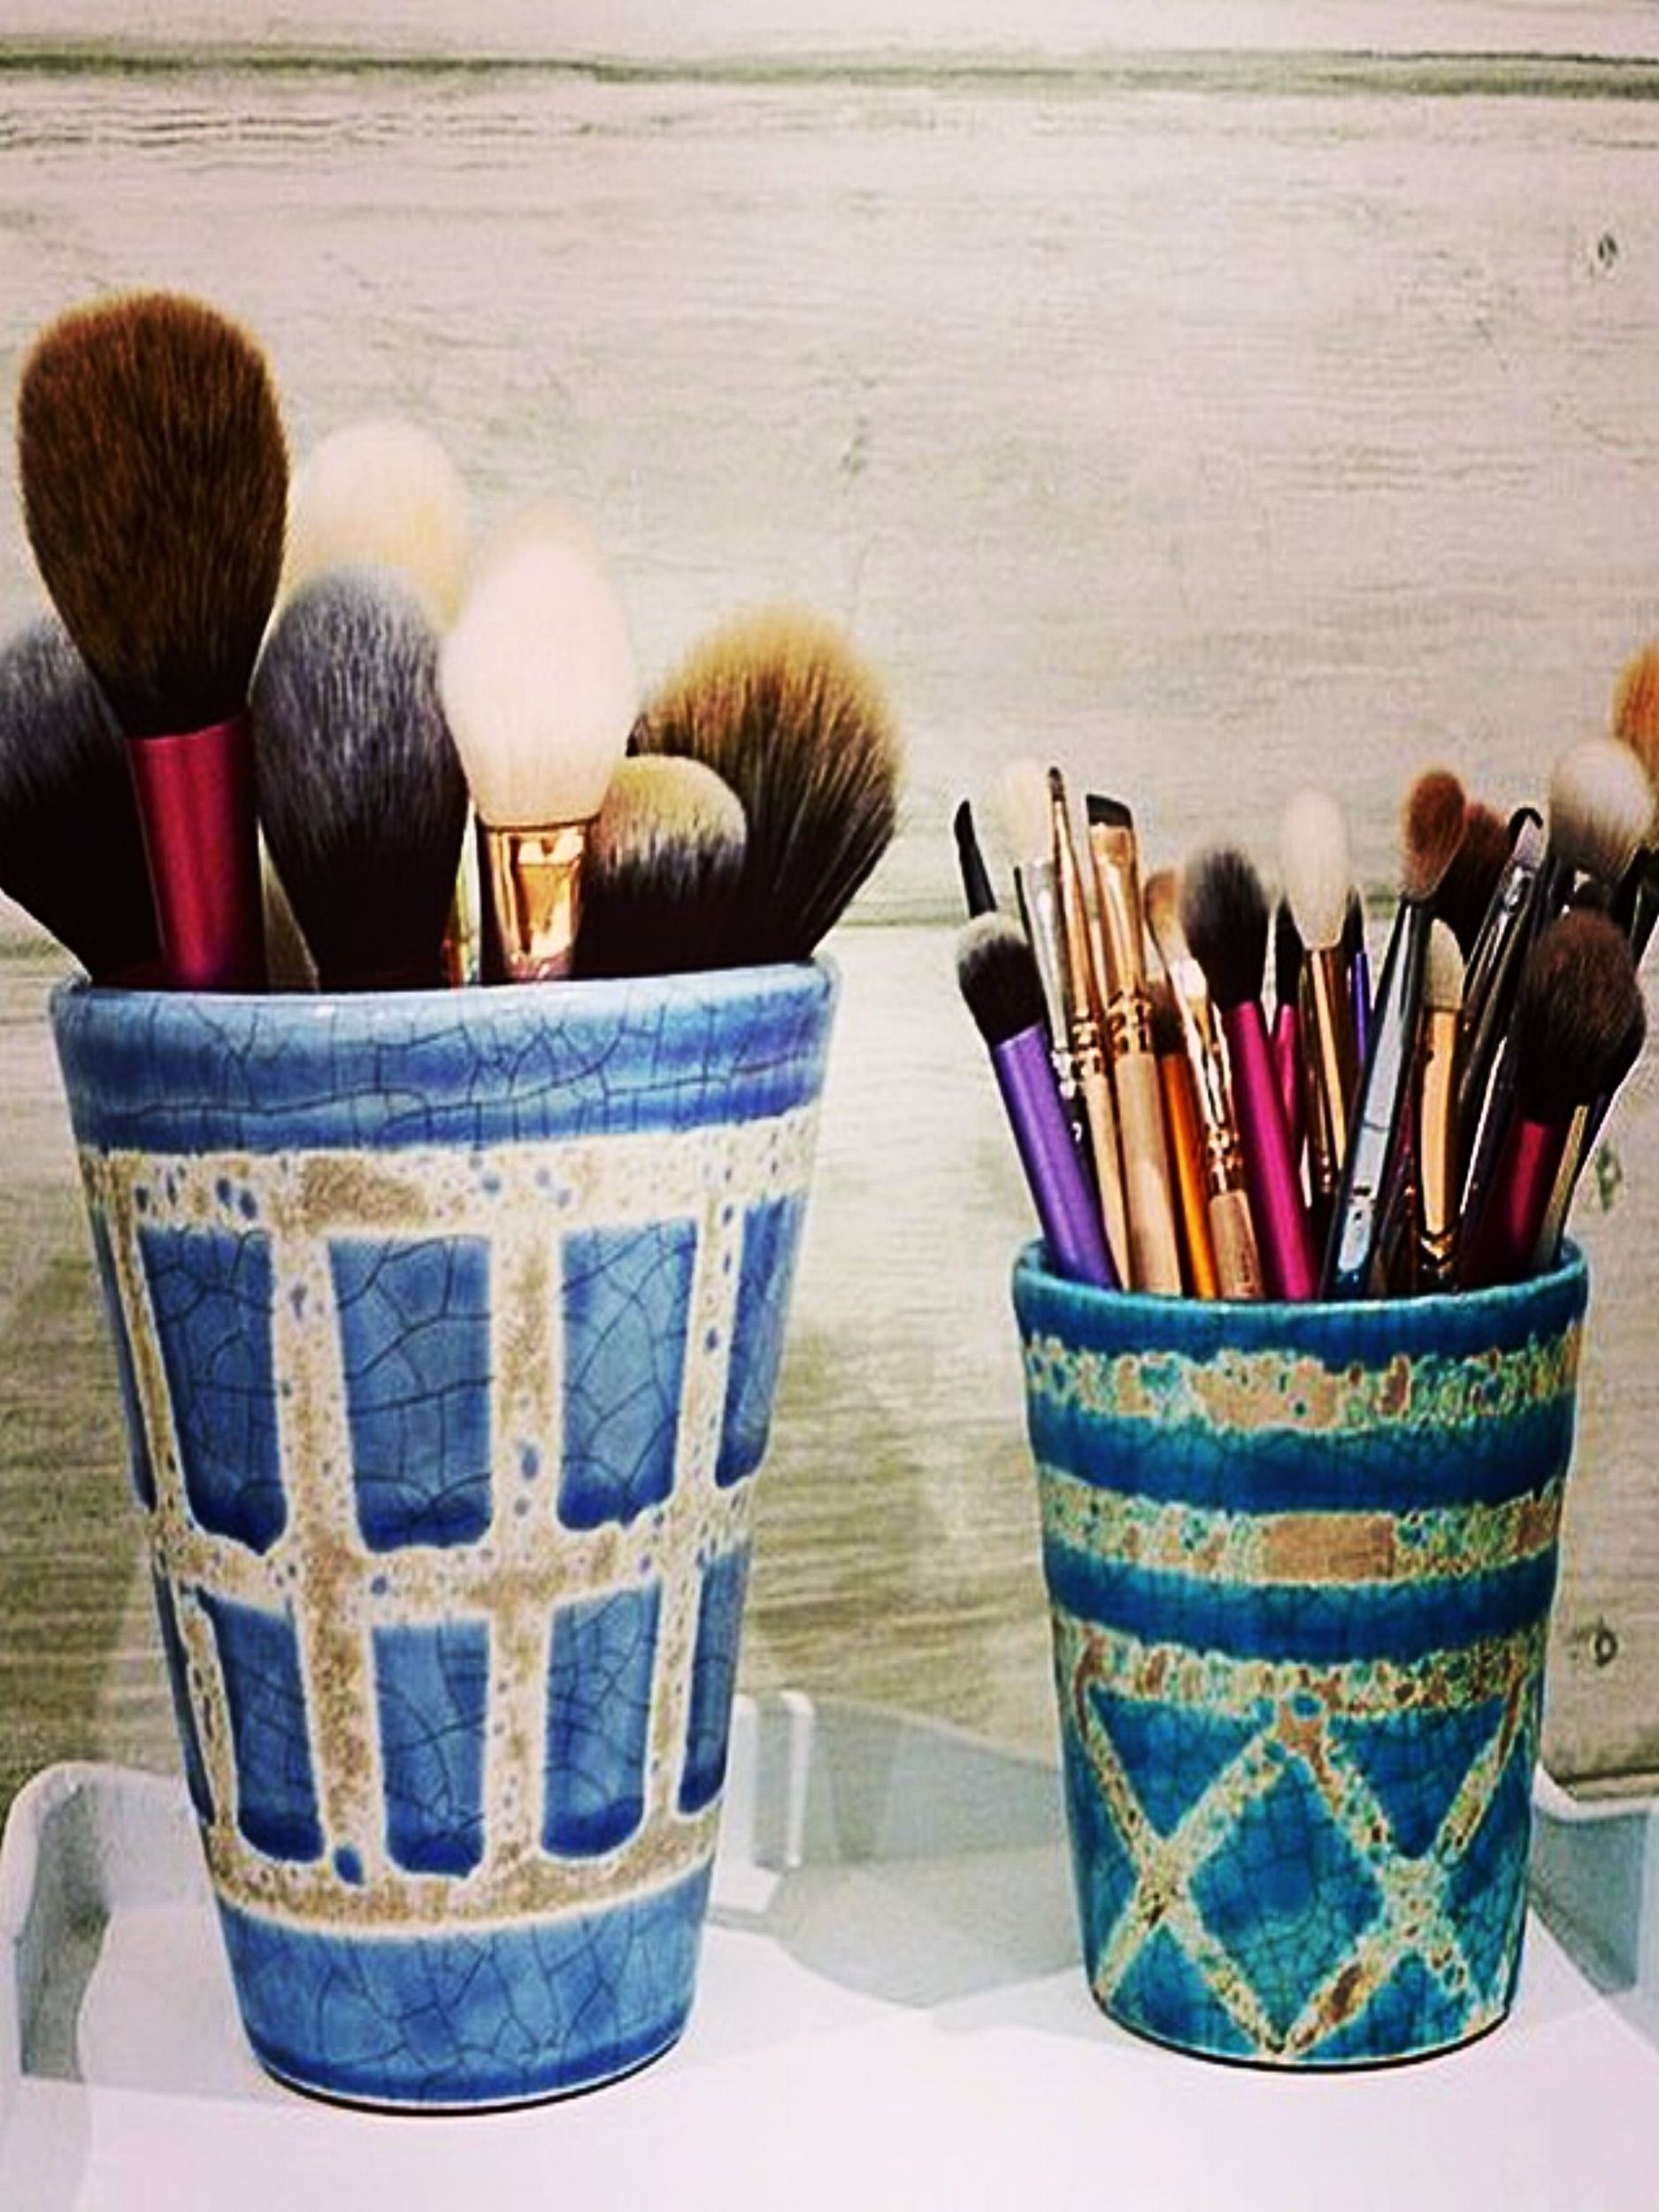 Jul 30 Beauty Must Haves MakeUp Tools & Brushes